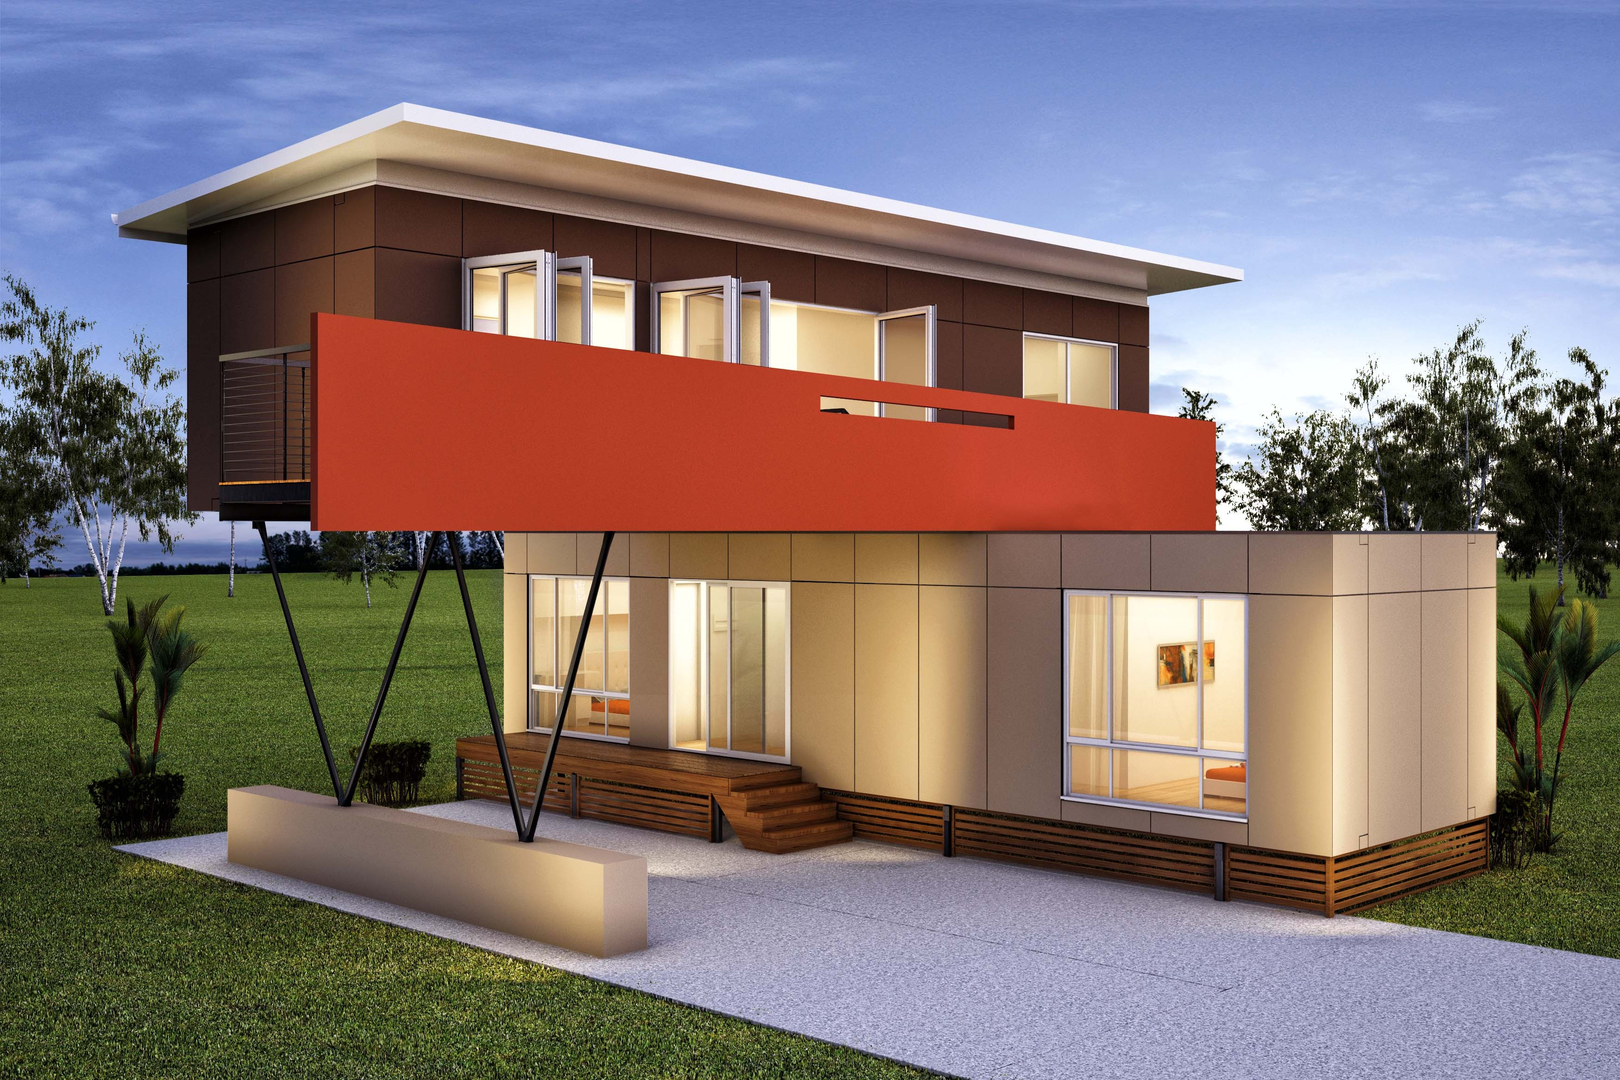 Container Home acd332f53cd3eb02f9a8fb5fe86f2bca?accesskeyid=a22e9699ee9eb1c3ac8d&disposition=0&alloworigin=1